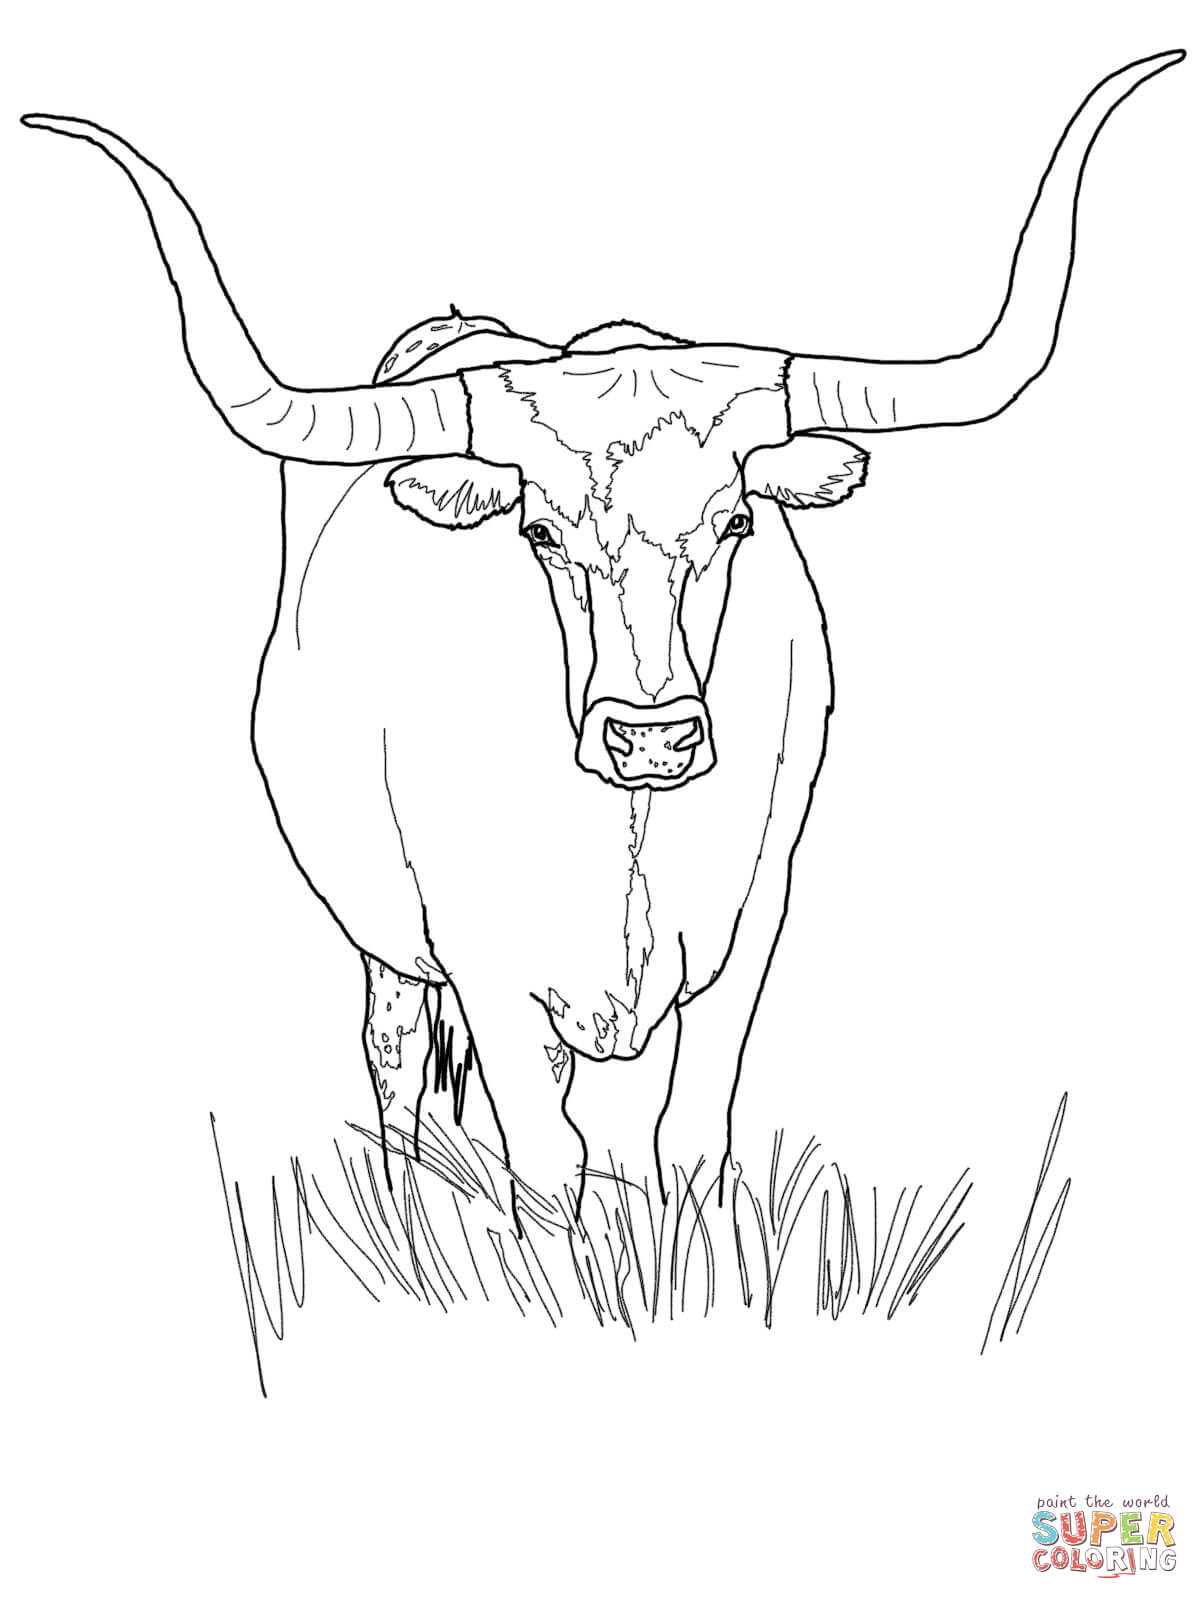 Angus Cow Drawing at GetDrawings.com | Free for personal use Angus ...